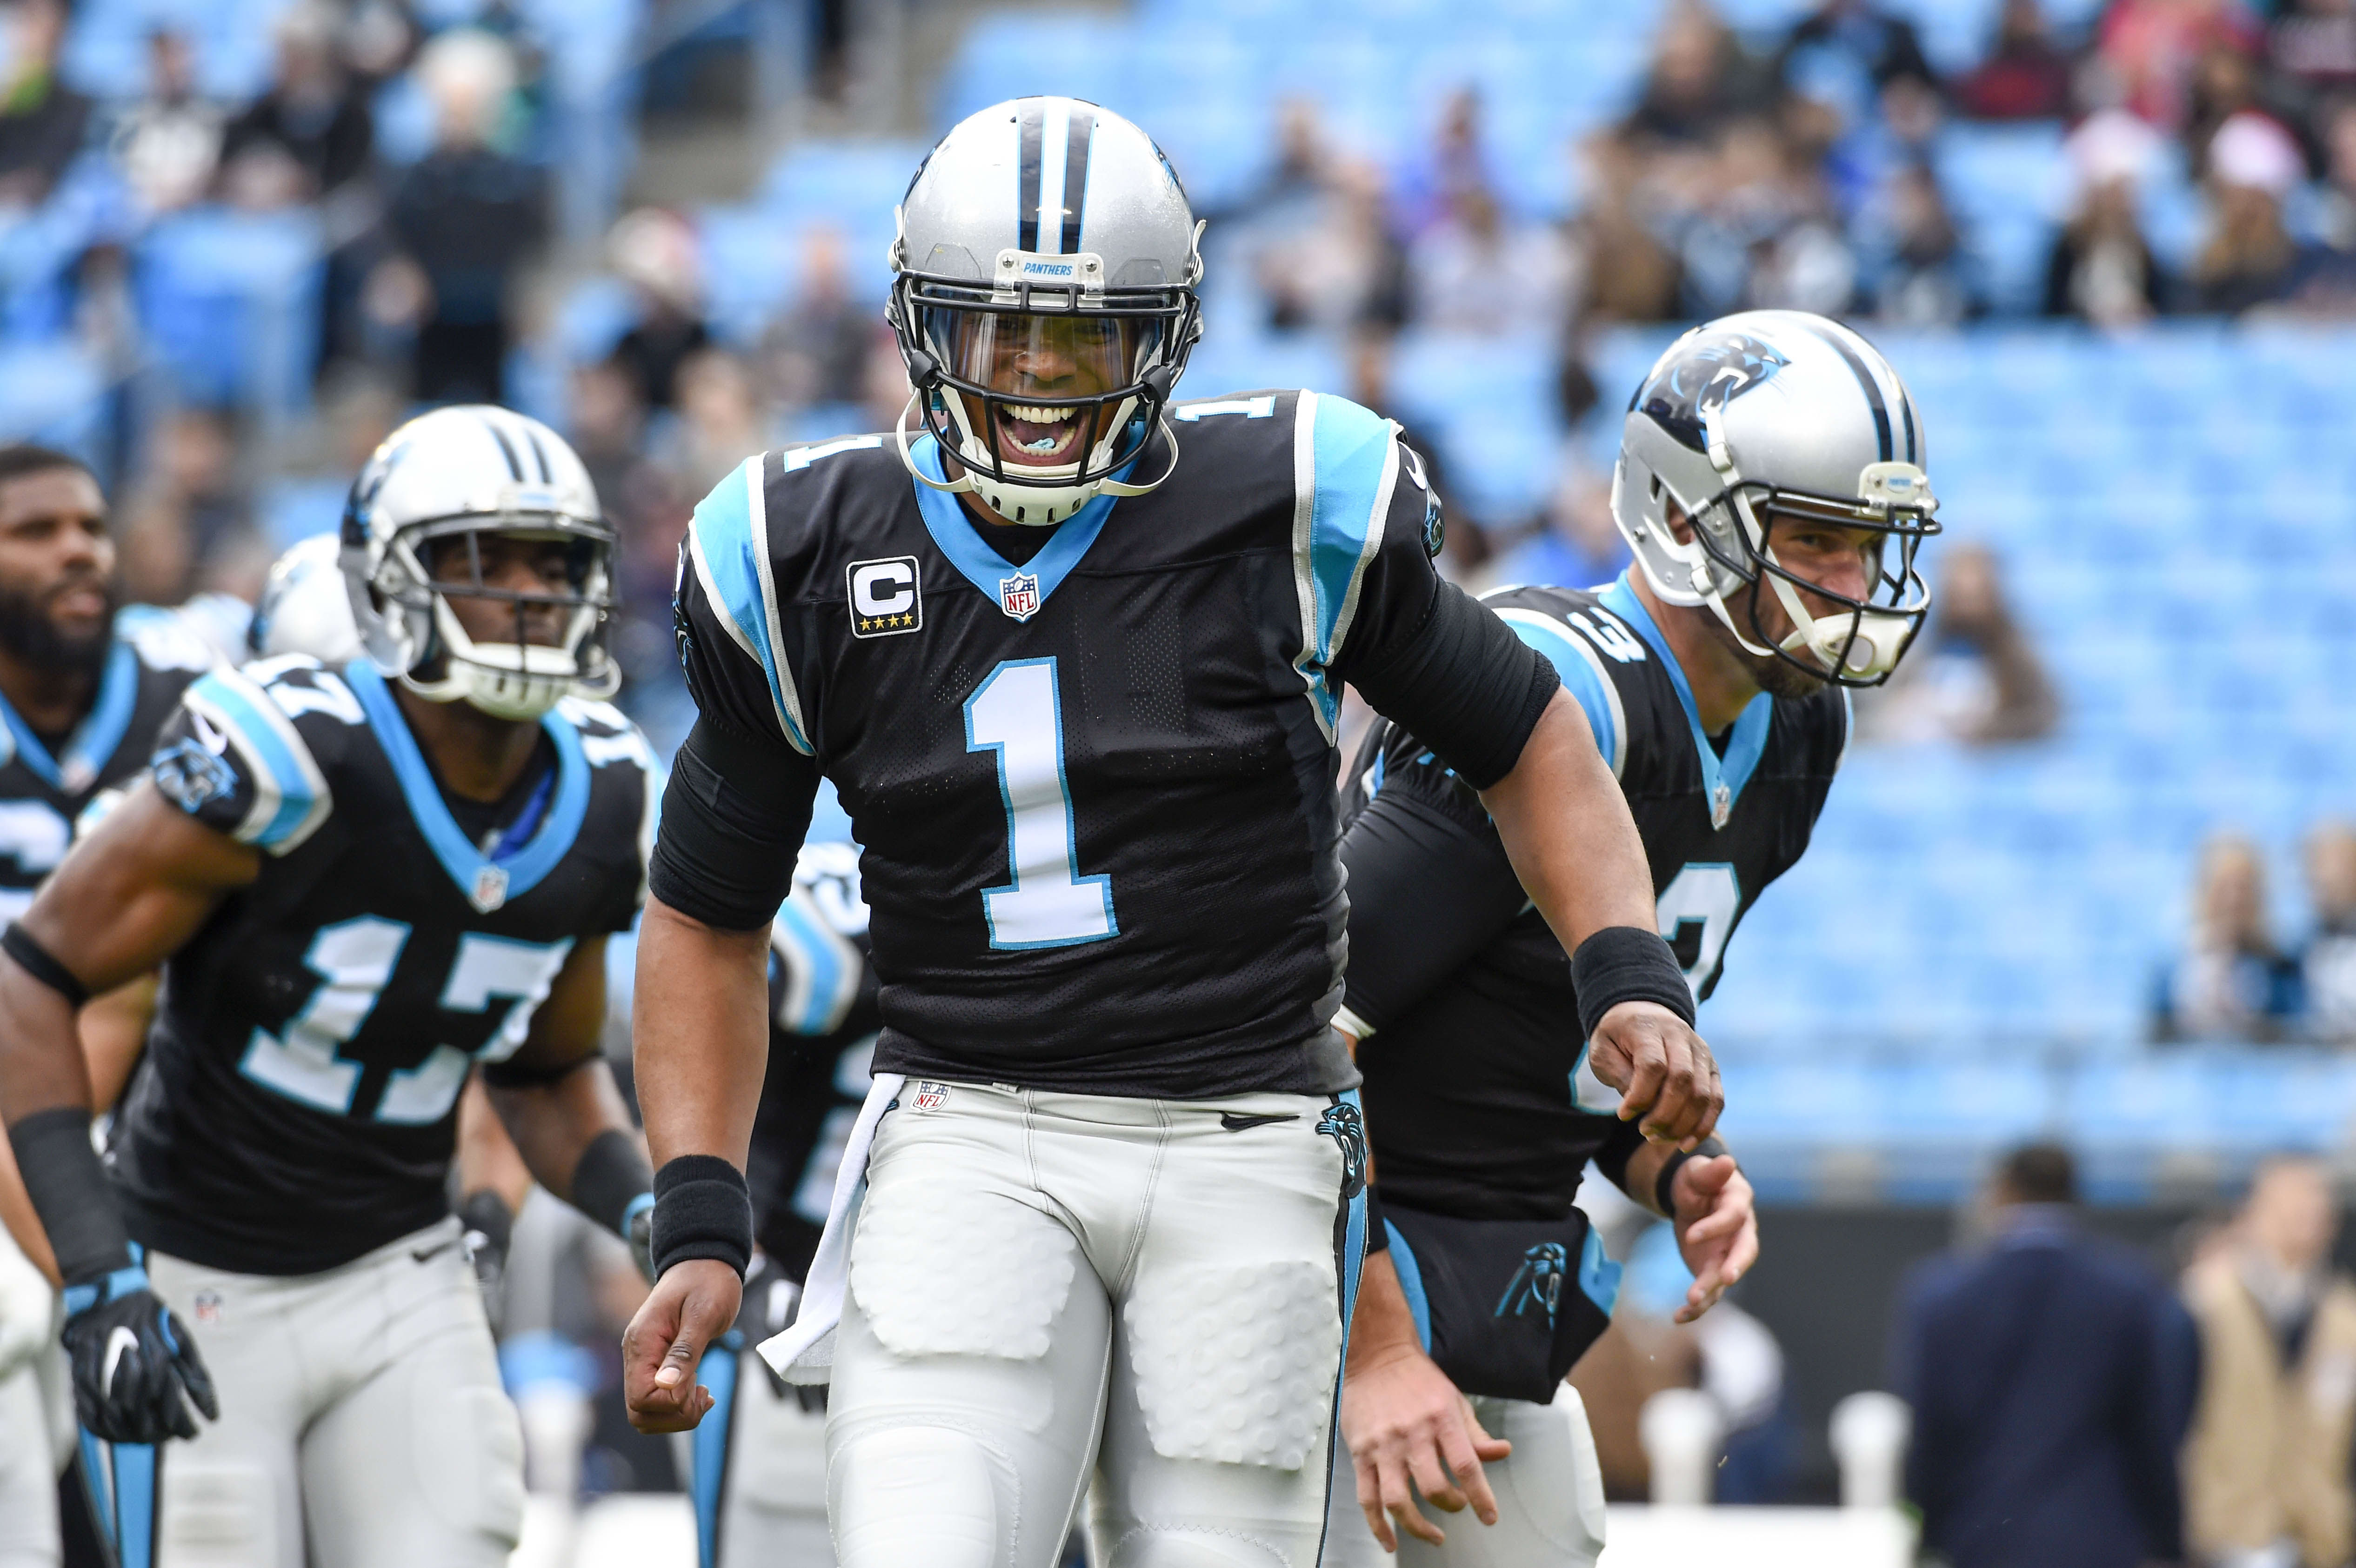 Dec 24, 2016; Charlotte, NC, USA; Carolina Panthers wide receiver Devin Funchess (17) and quarterback Cam Newton (1) and quarterback Derek Anderson (3) before the game at Bank of America Stadium. Mandatory Credit: Bob Donnan-USA TODAY Sports